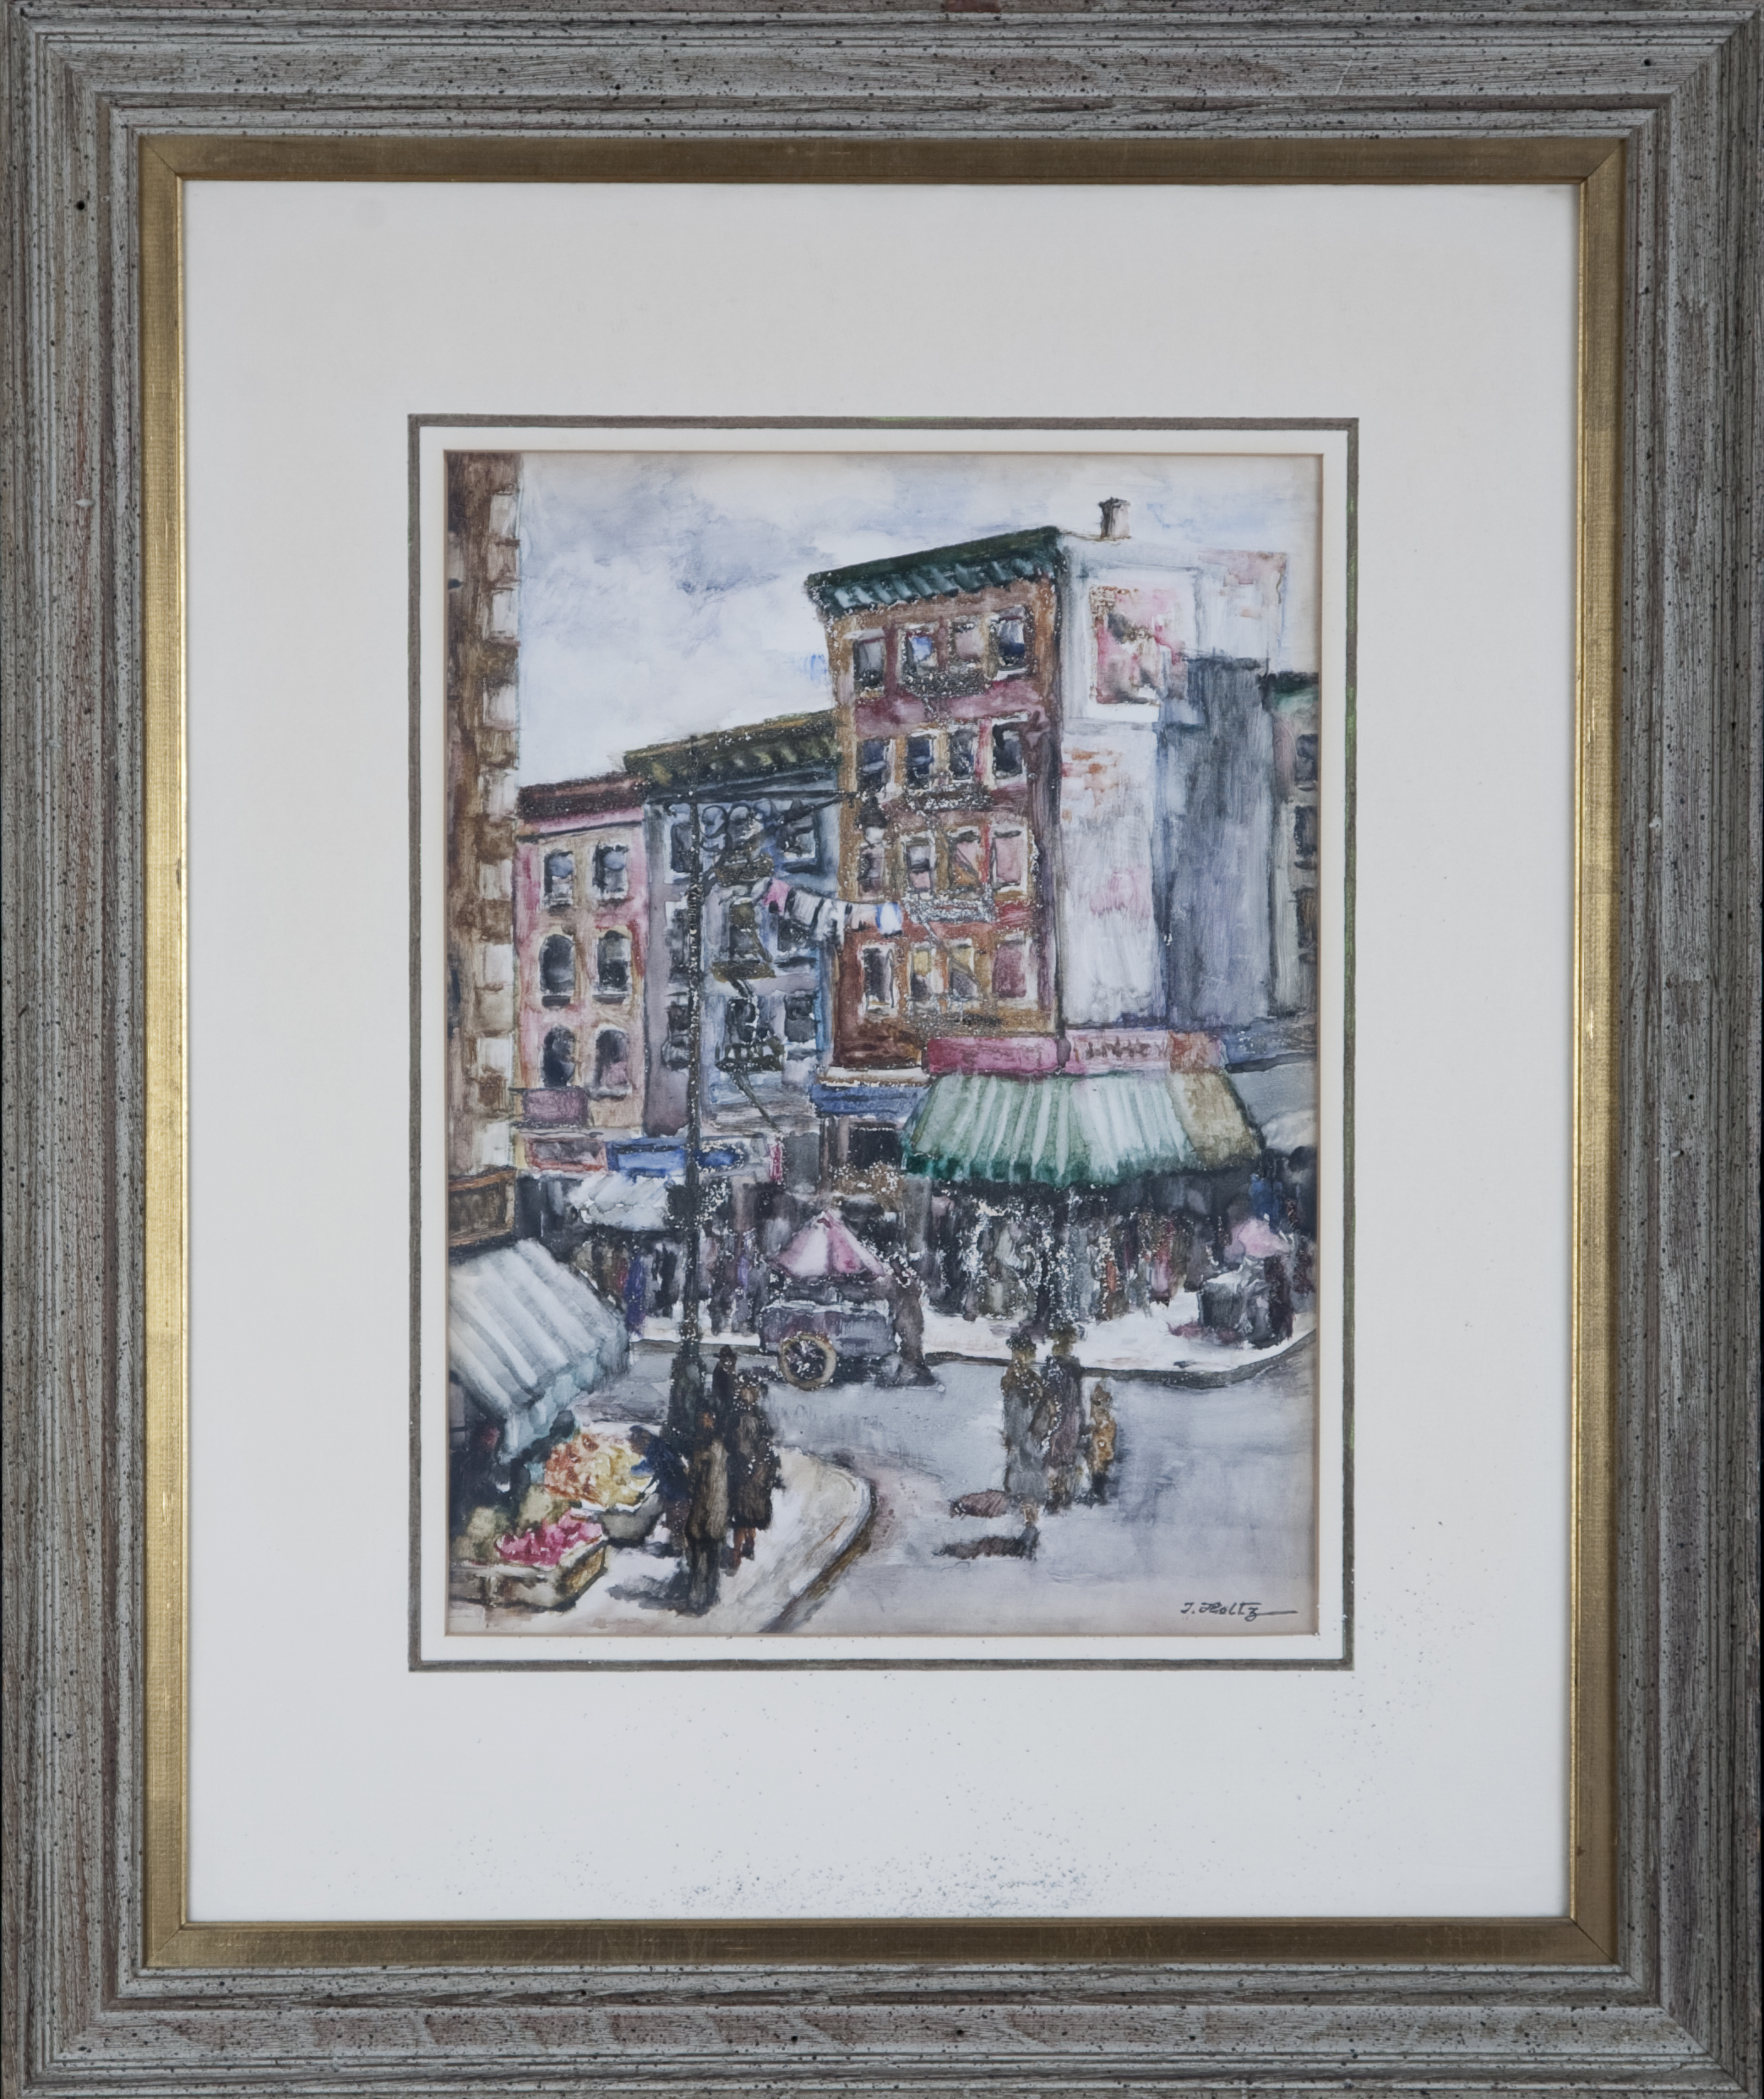 266 Lower East Side 1955 - Watercolor - 11.5 x 15.5 - Frame: 22.825 x 27.125 x 1.25